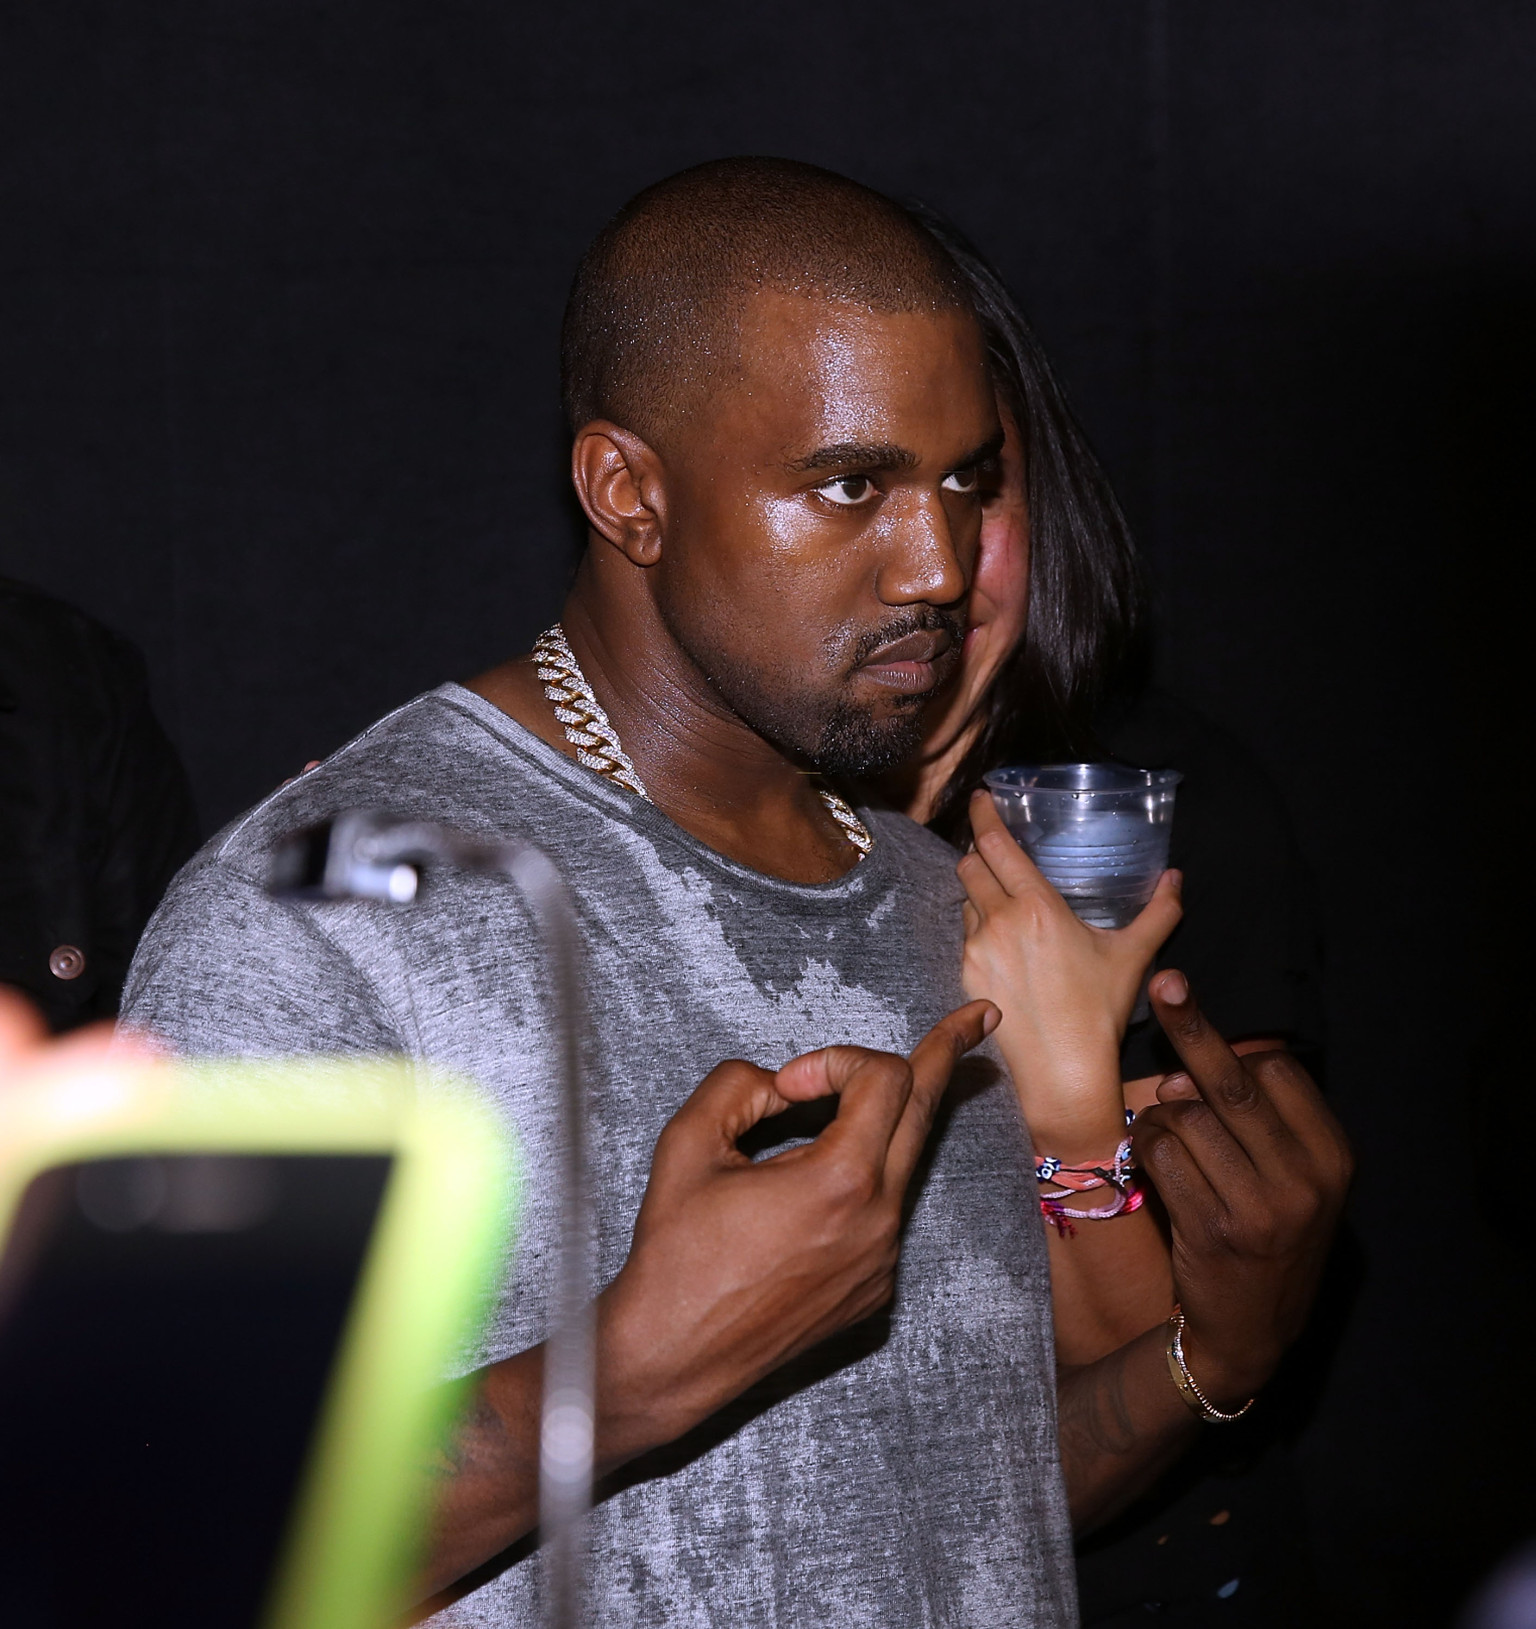 Kanye West Face After Car Accident | www.galleryhip.com - The Hippest ...